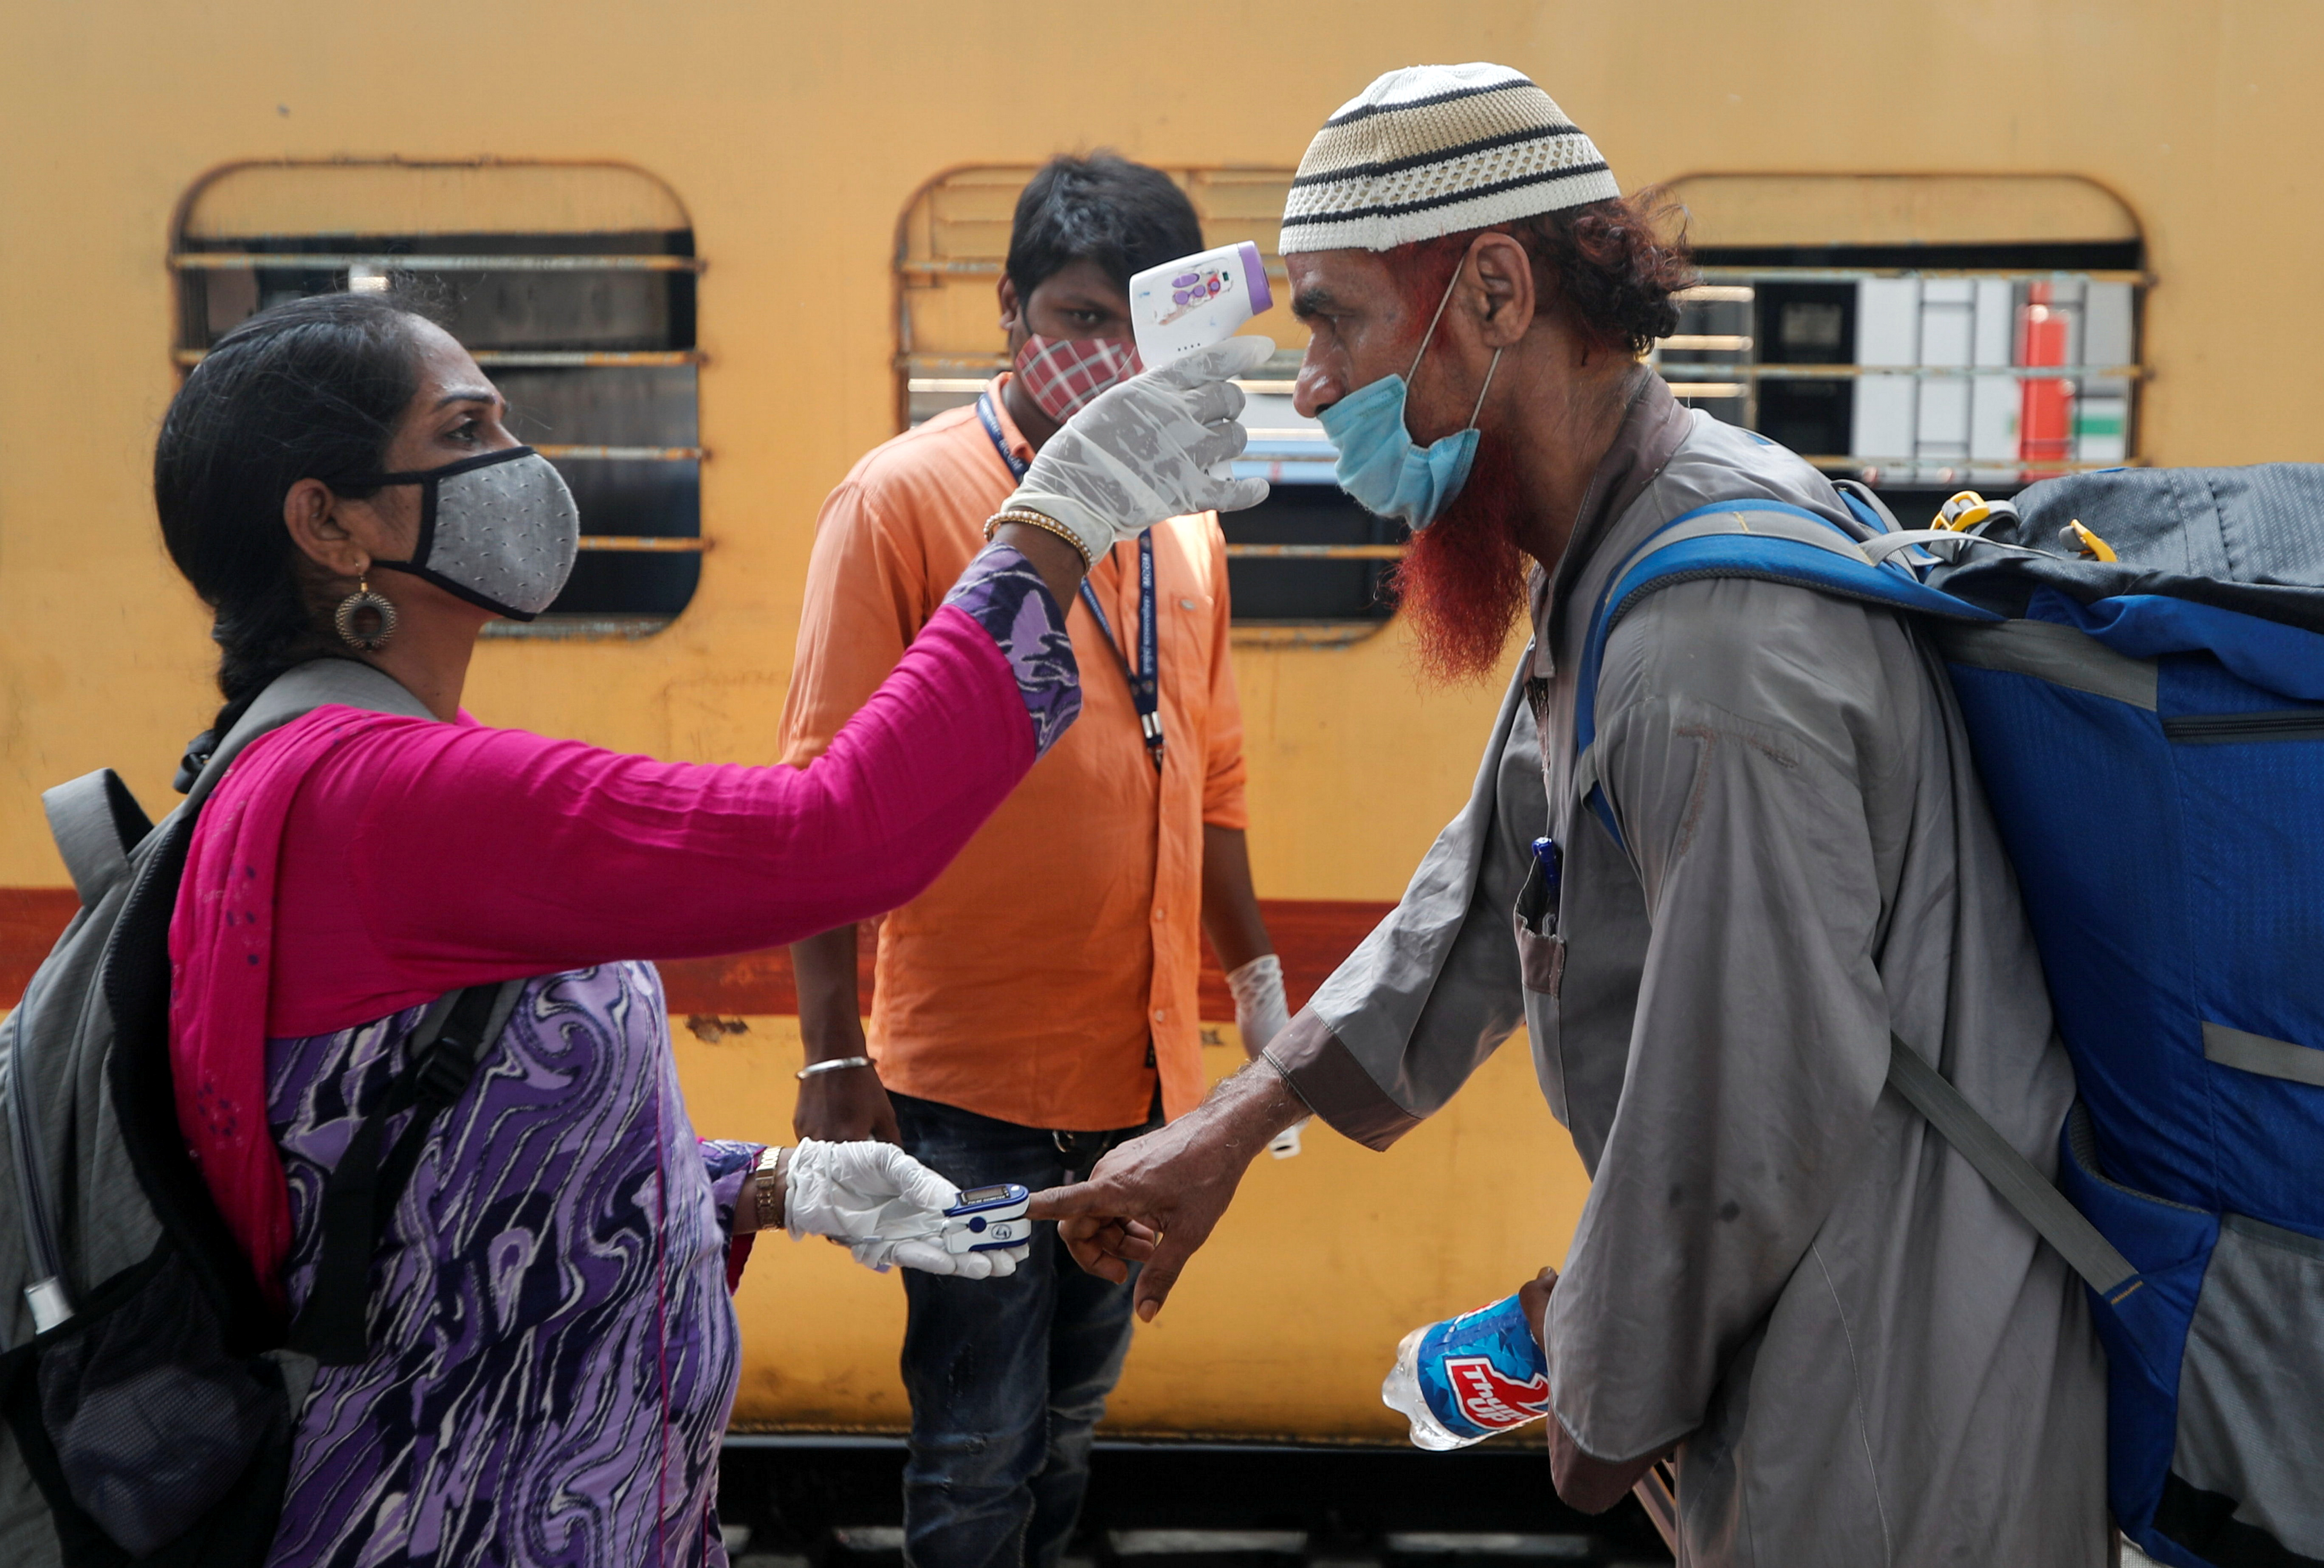 A health worker checks a passenger's temperature and pulse at a railway station platform amidst the spread of the coronavirus disease (COVID-19) in Mumbai, India, April 7, 2021. REUTERS/Francis Mascarenhas